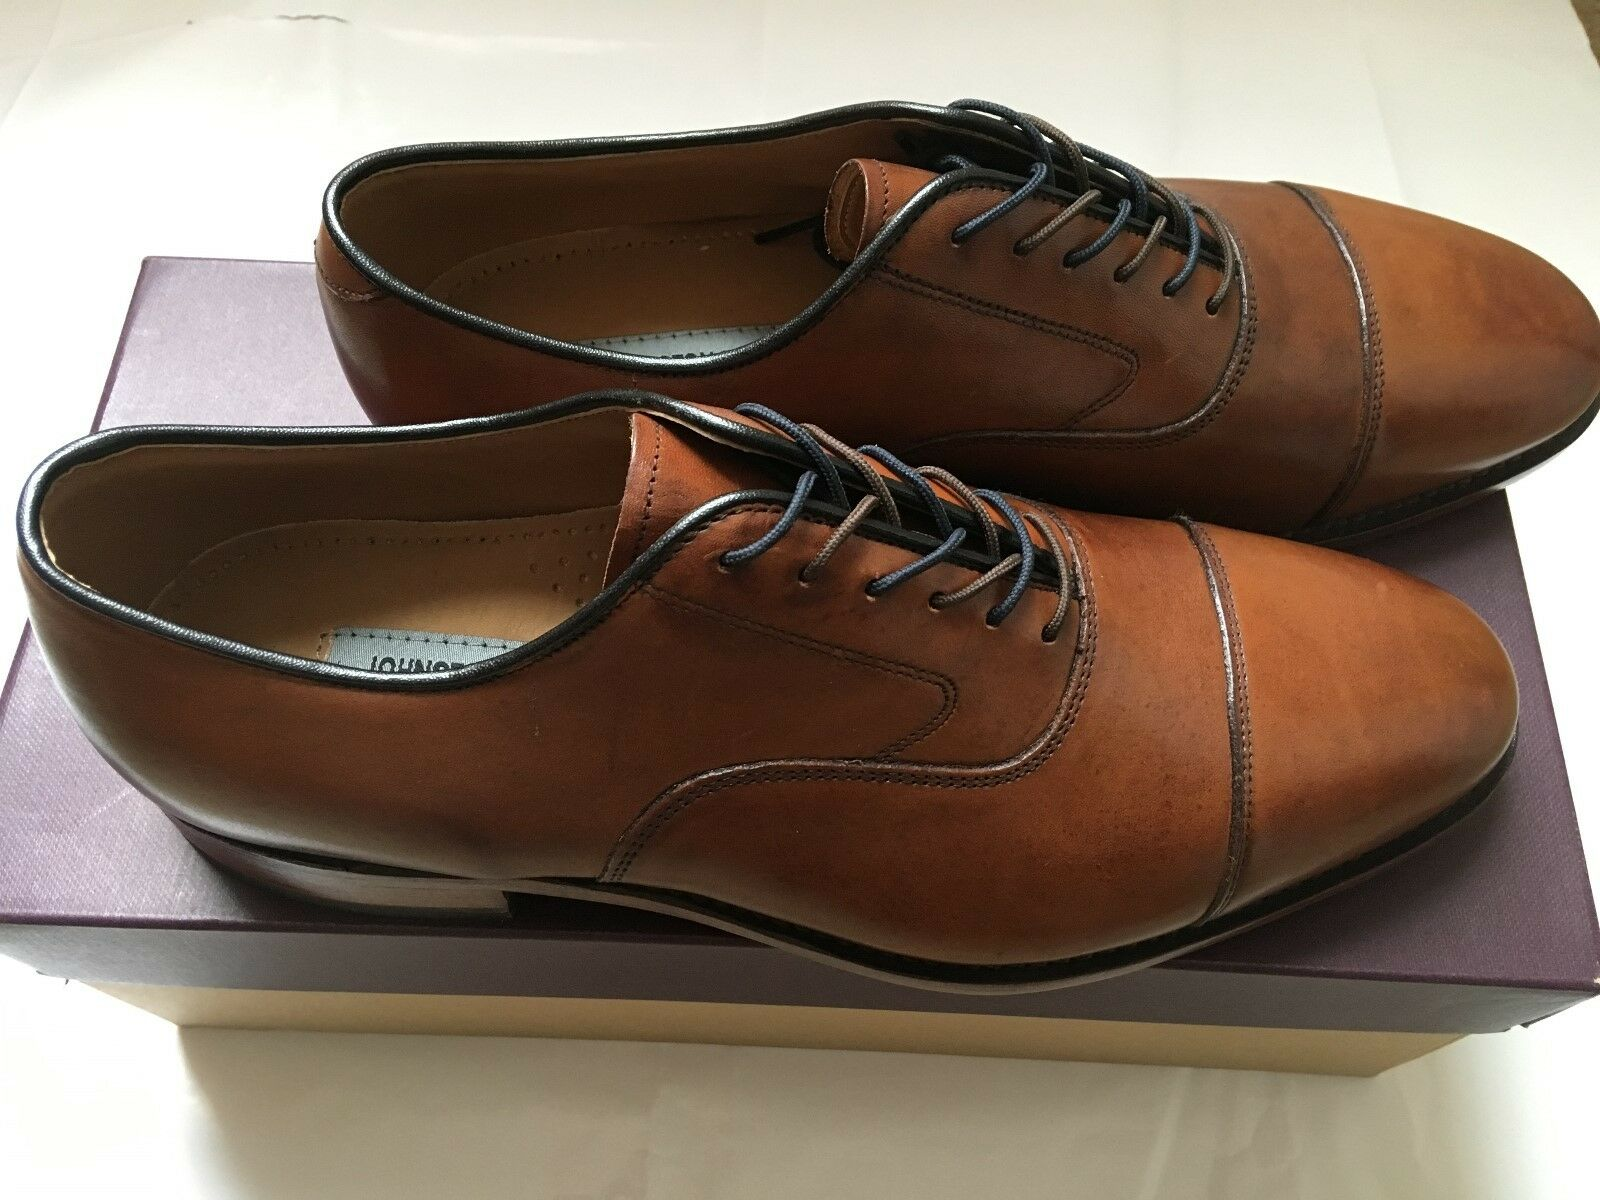 JohnstonΜrphy, Melton, tan, size 12D, pelle, genuine pelle, 12D, new in box 282a91